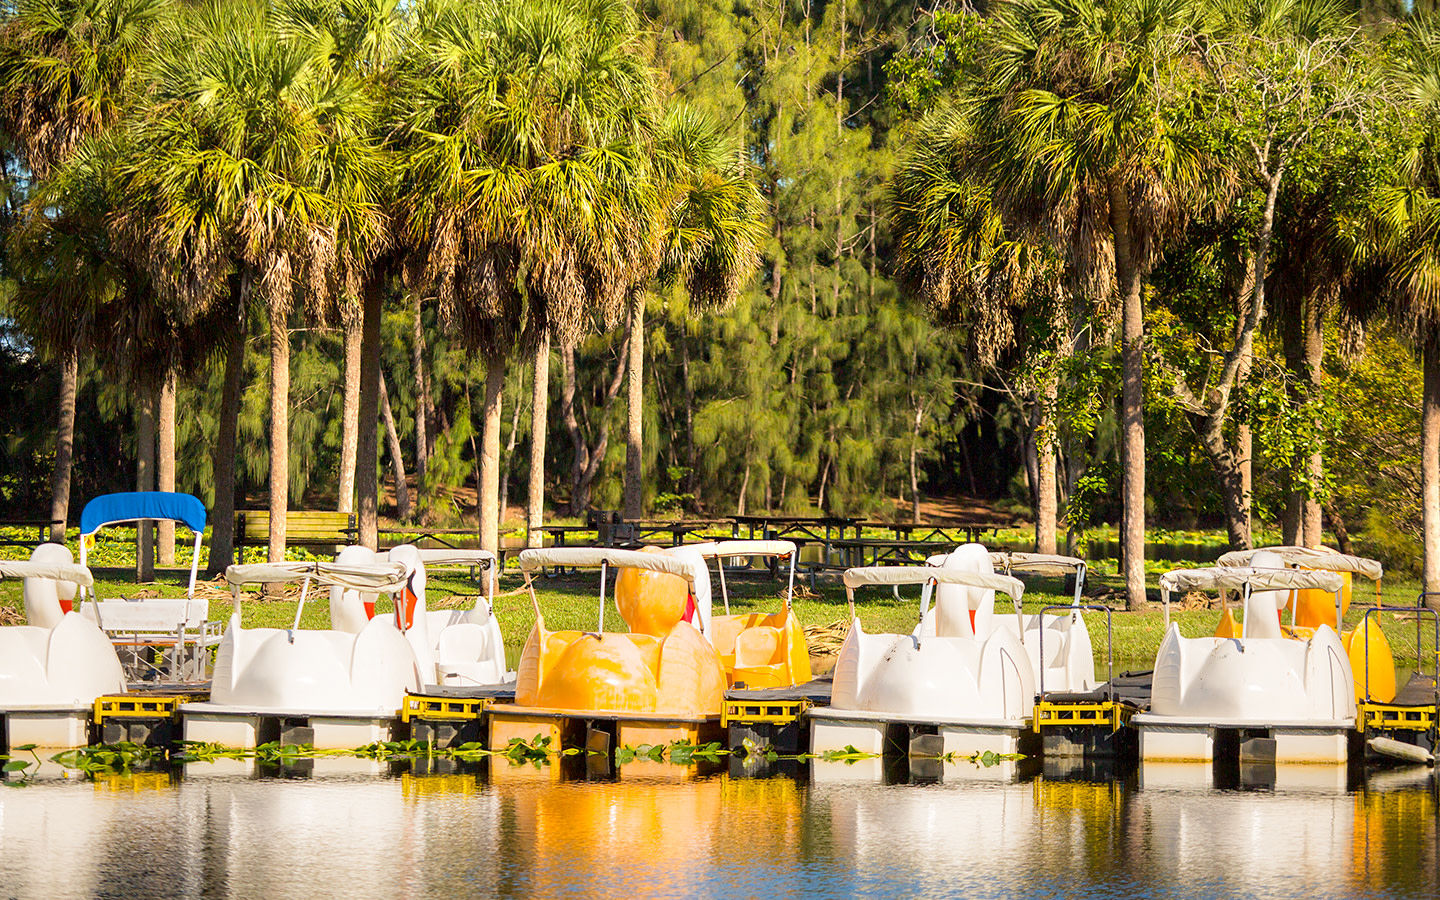 Rental paddle boats at Amelia Earhart Park